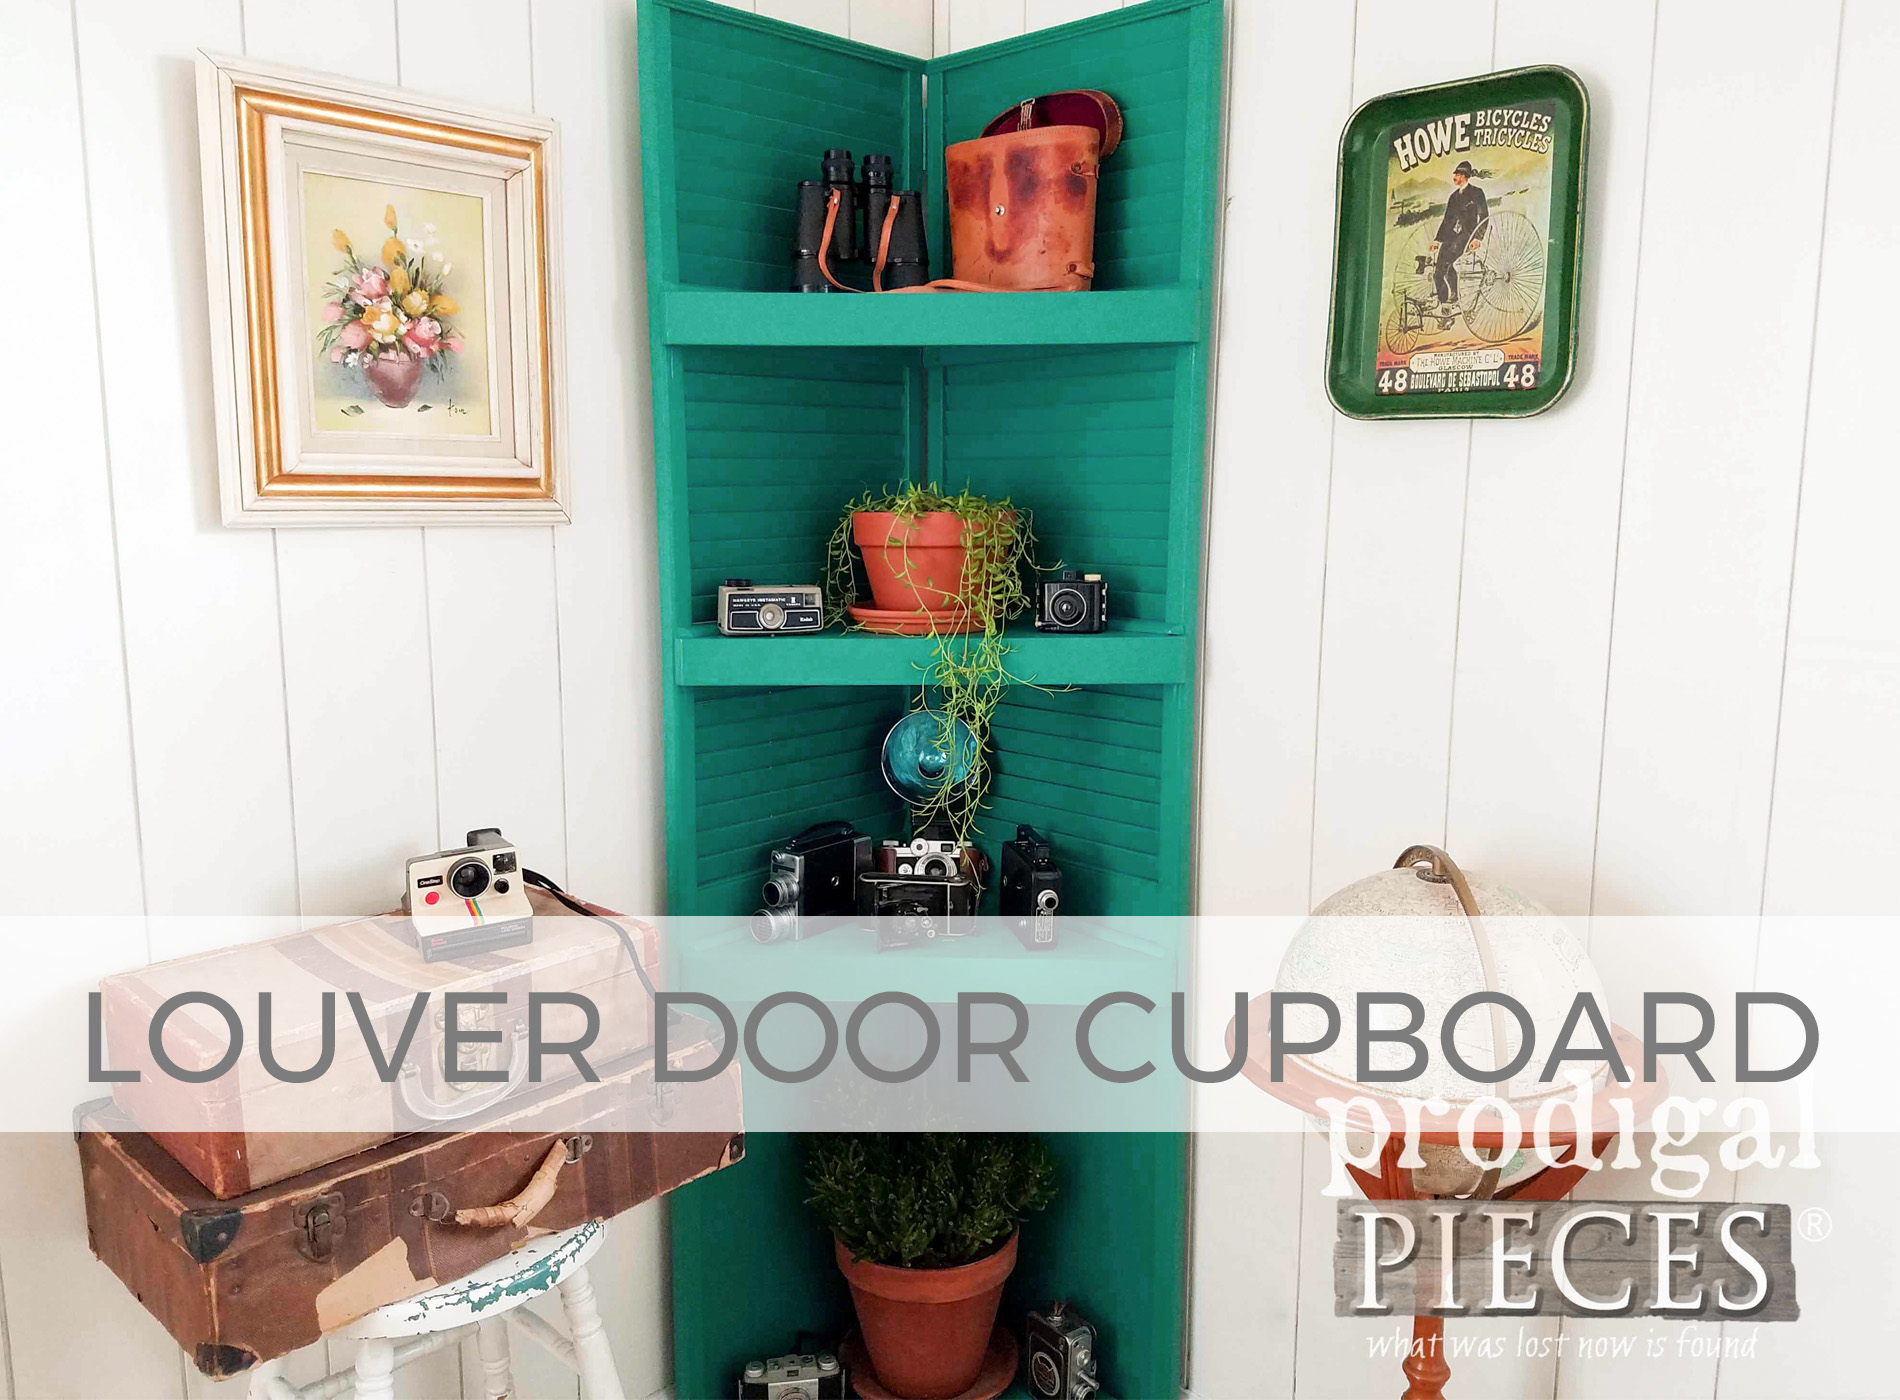 Upcycled Louver Door Cupboard by Larissa of Prodigal Pieces | prodigalpieces.com